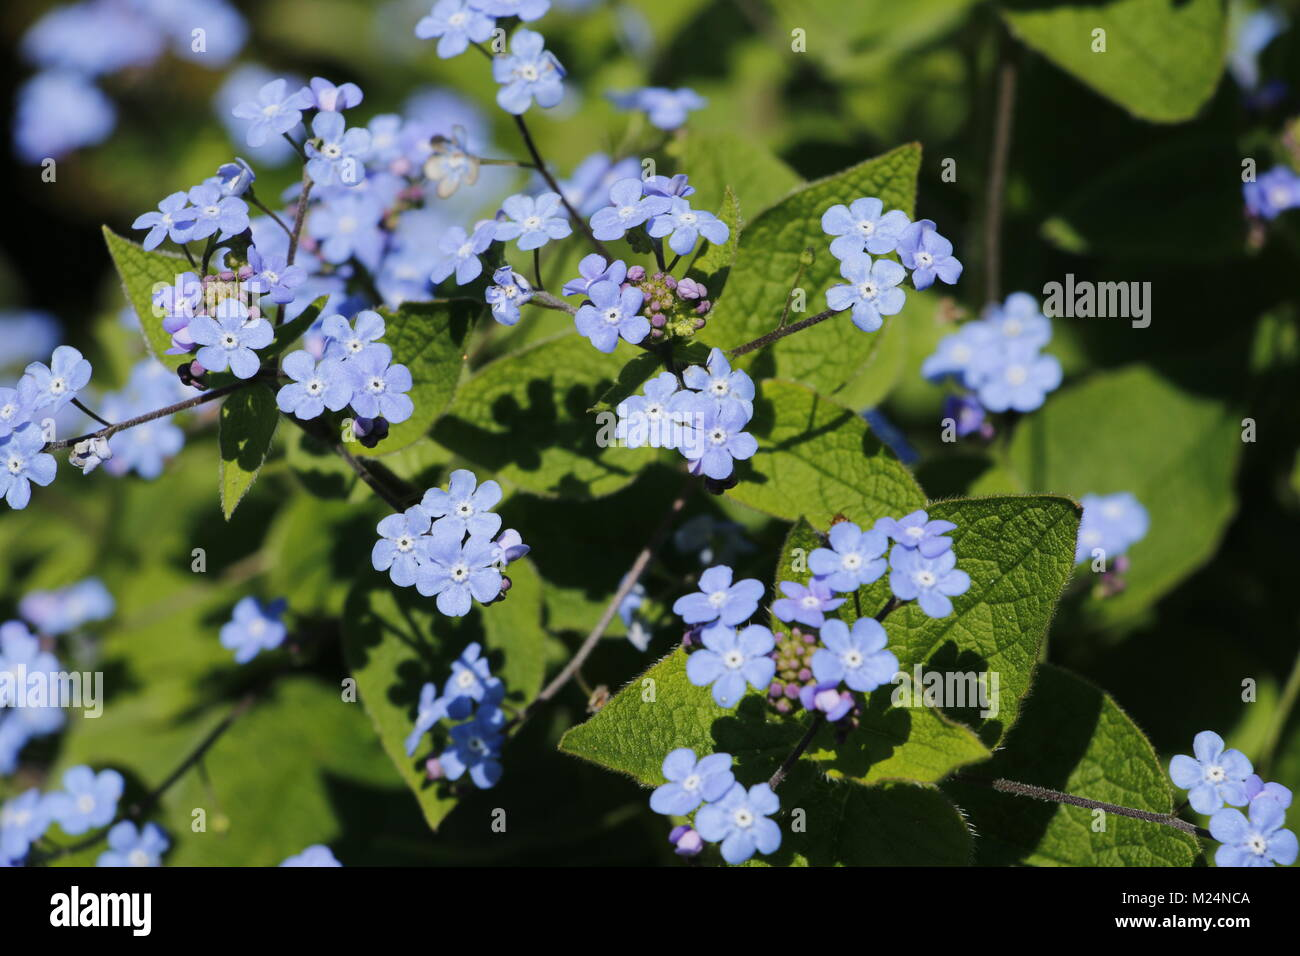 Forget Me Not Flowers Tiny Blue Flowers Stock Photo 173437610 Alamy